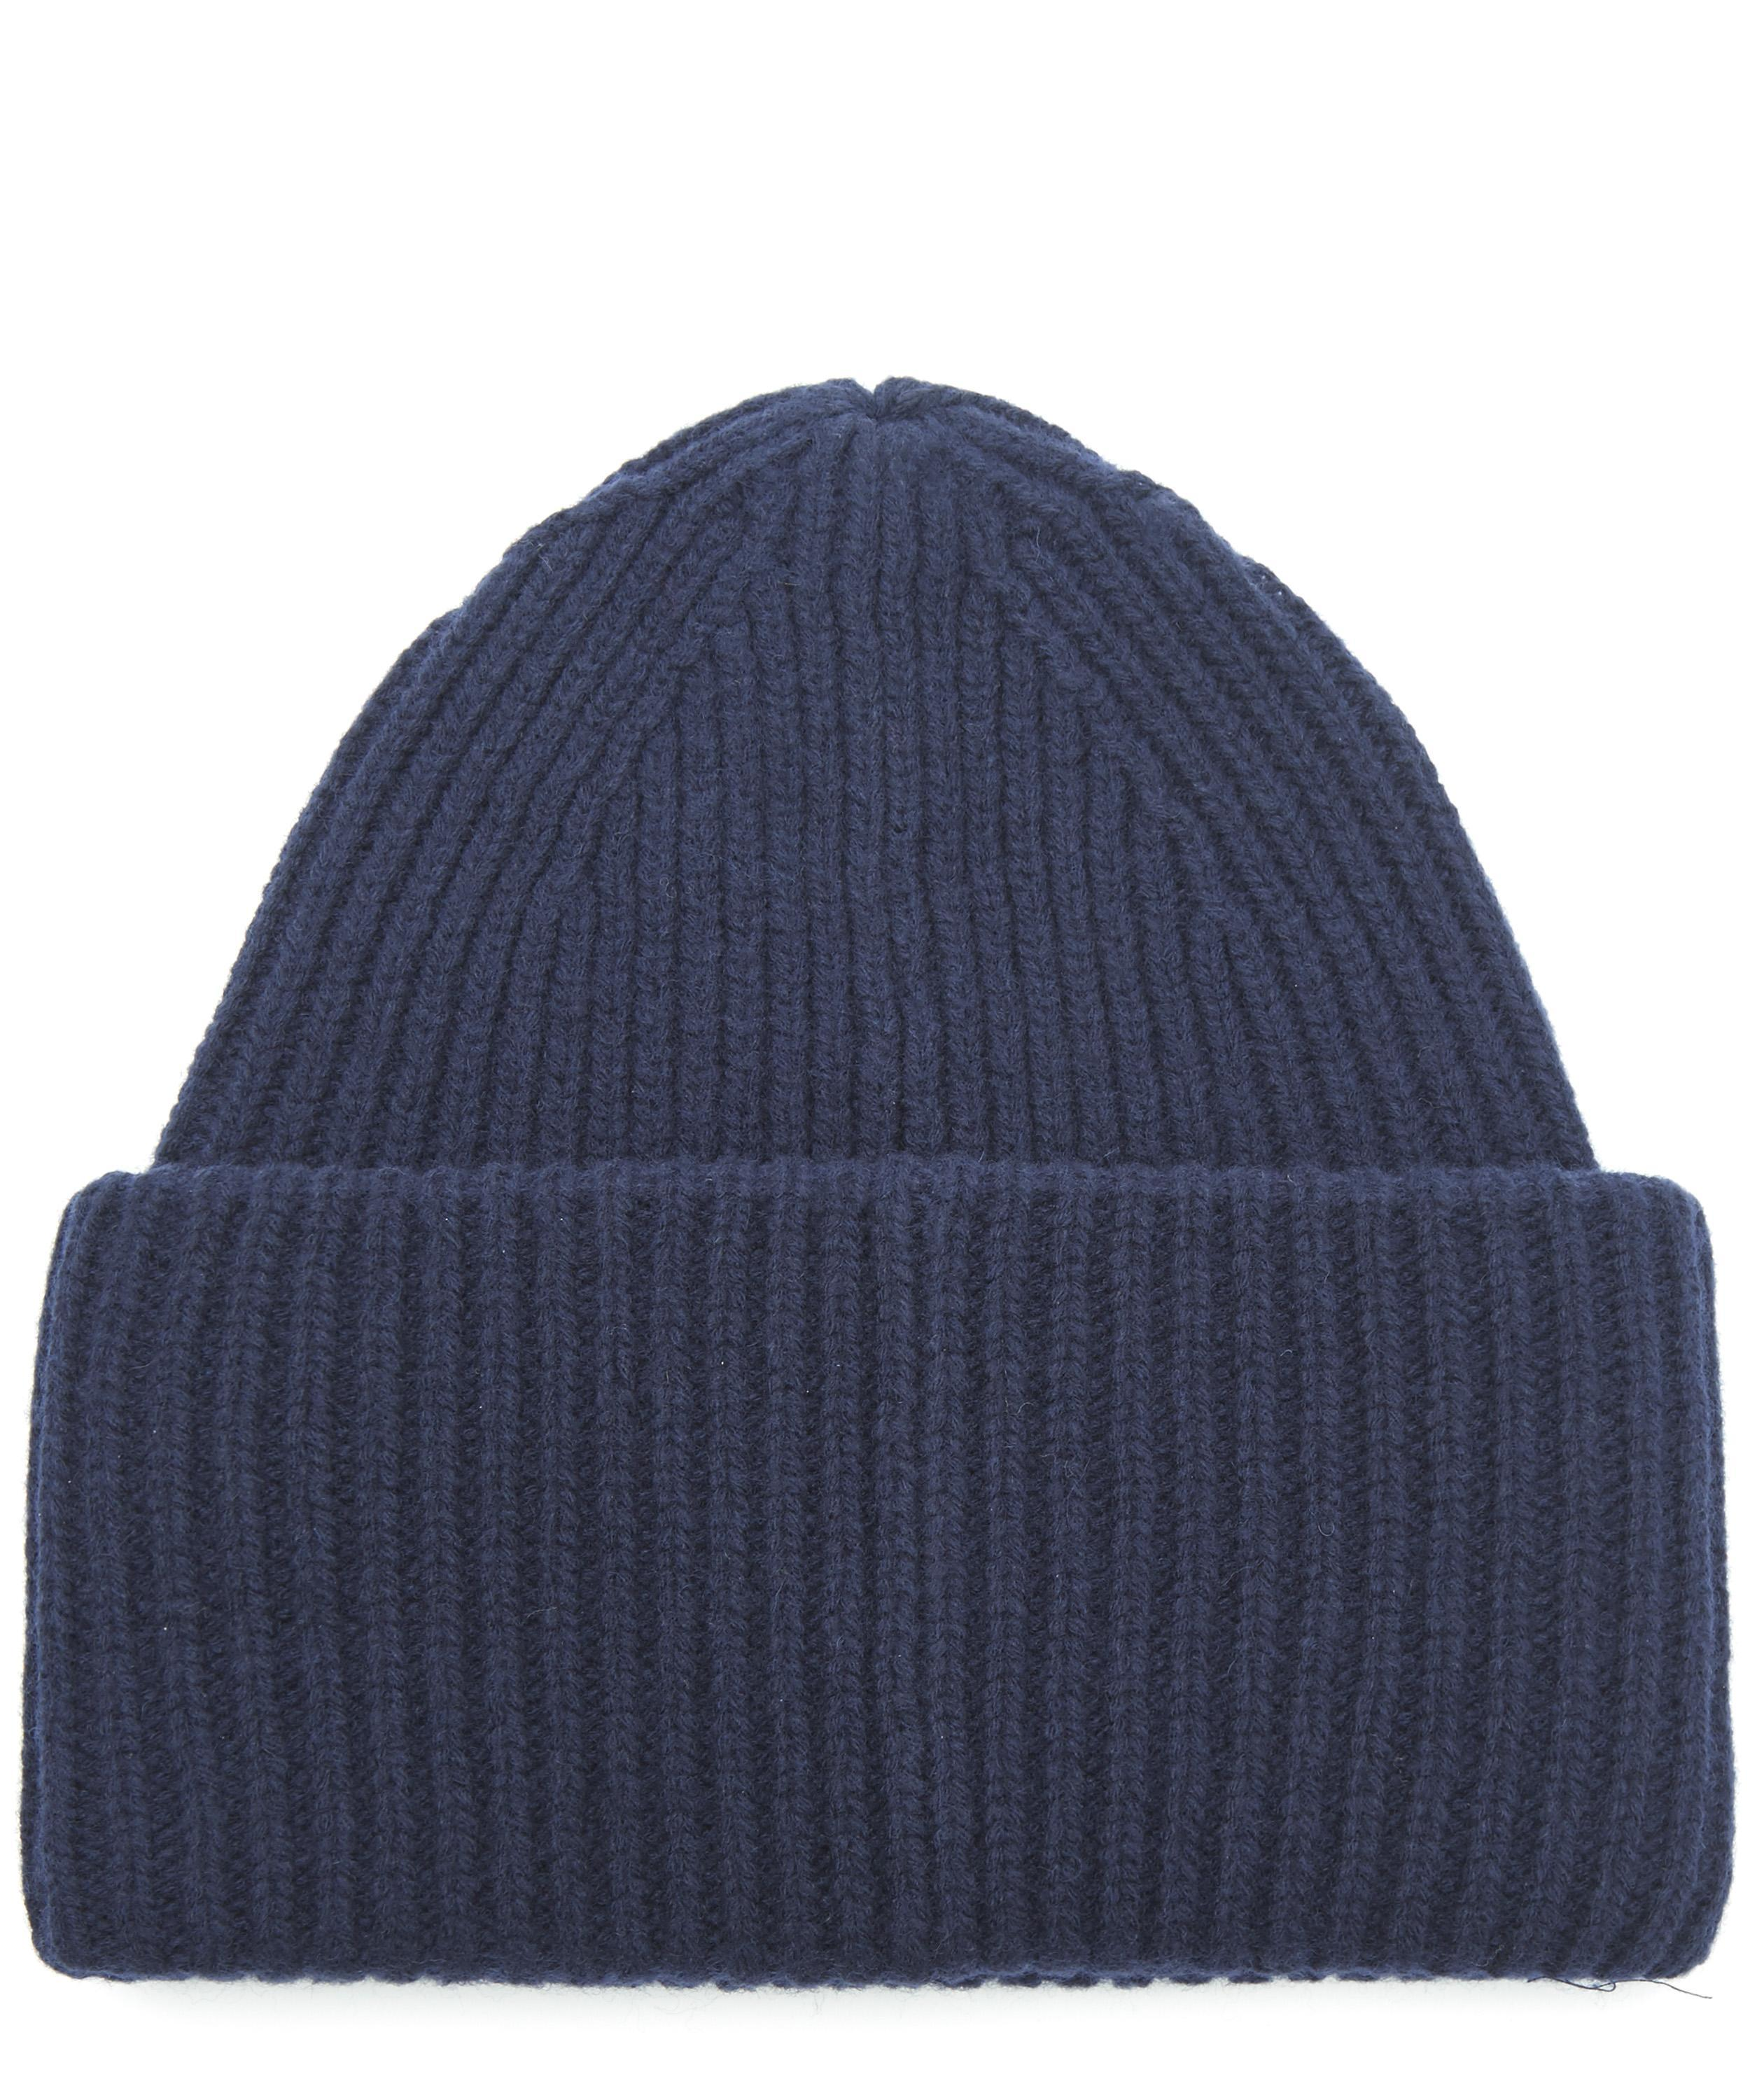 a64727e6780 Acne Studios Pansy Face Wool Beanie Hat in Blue for Men - Lyst